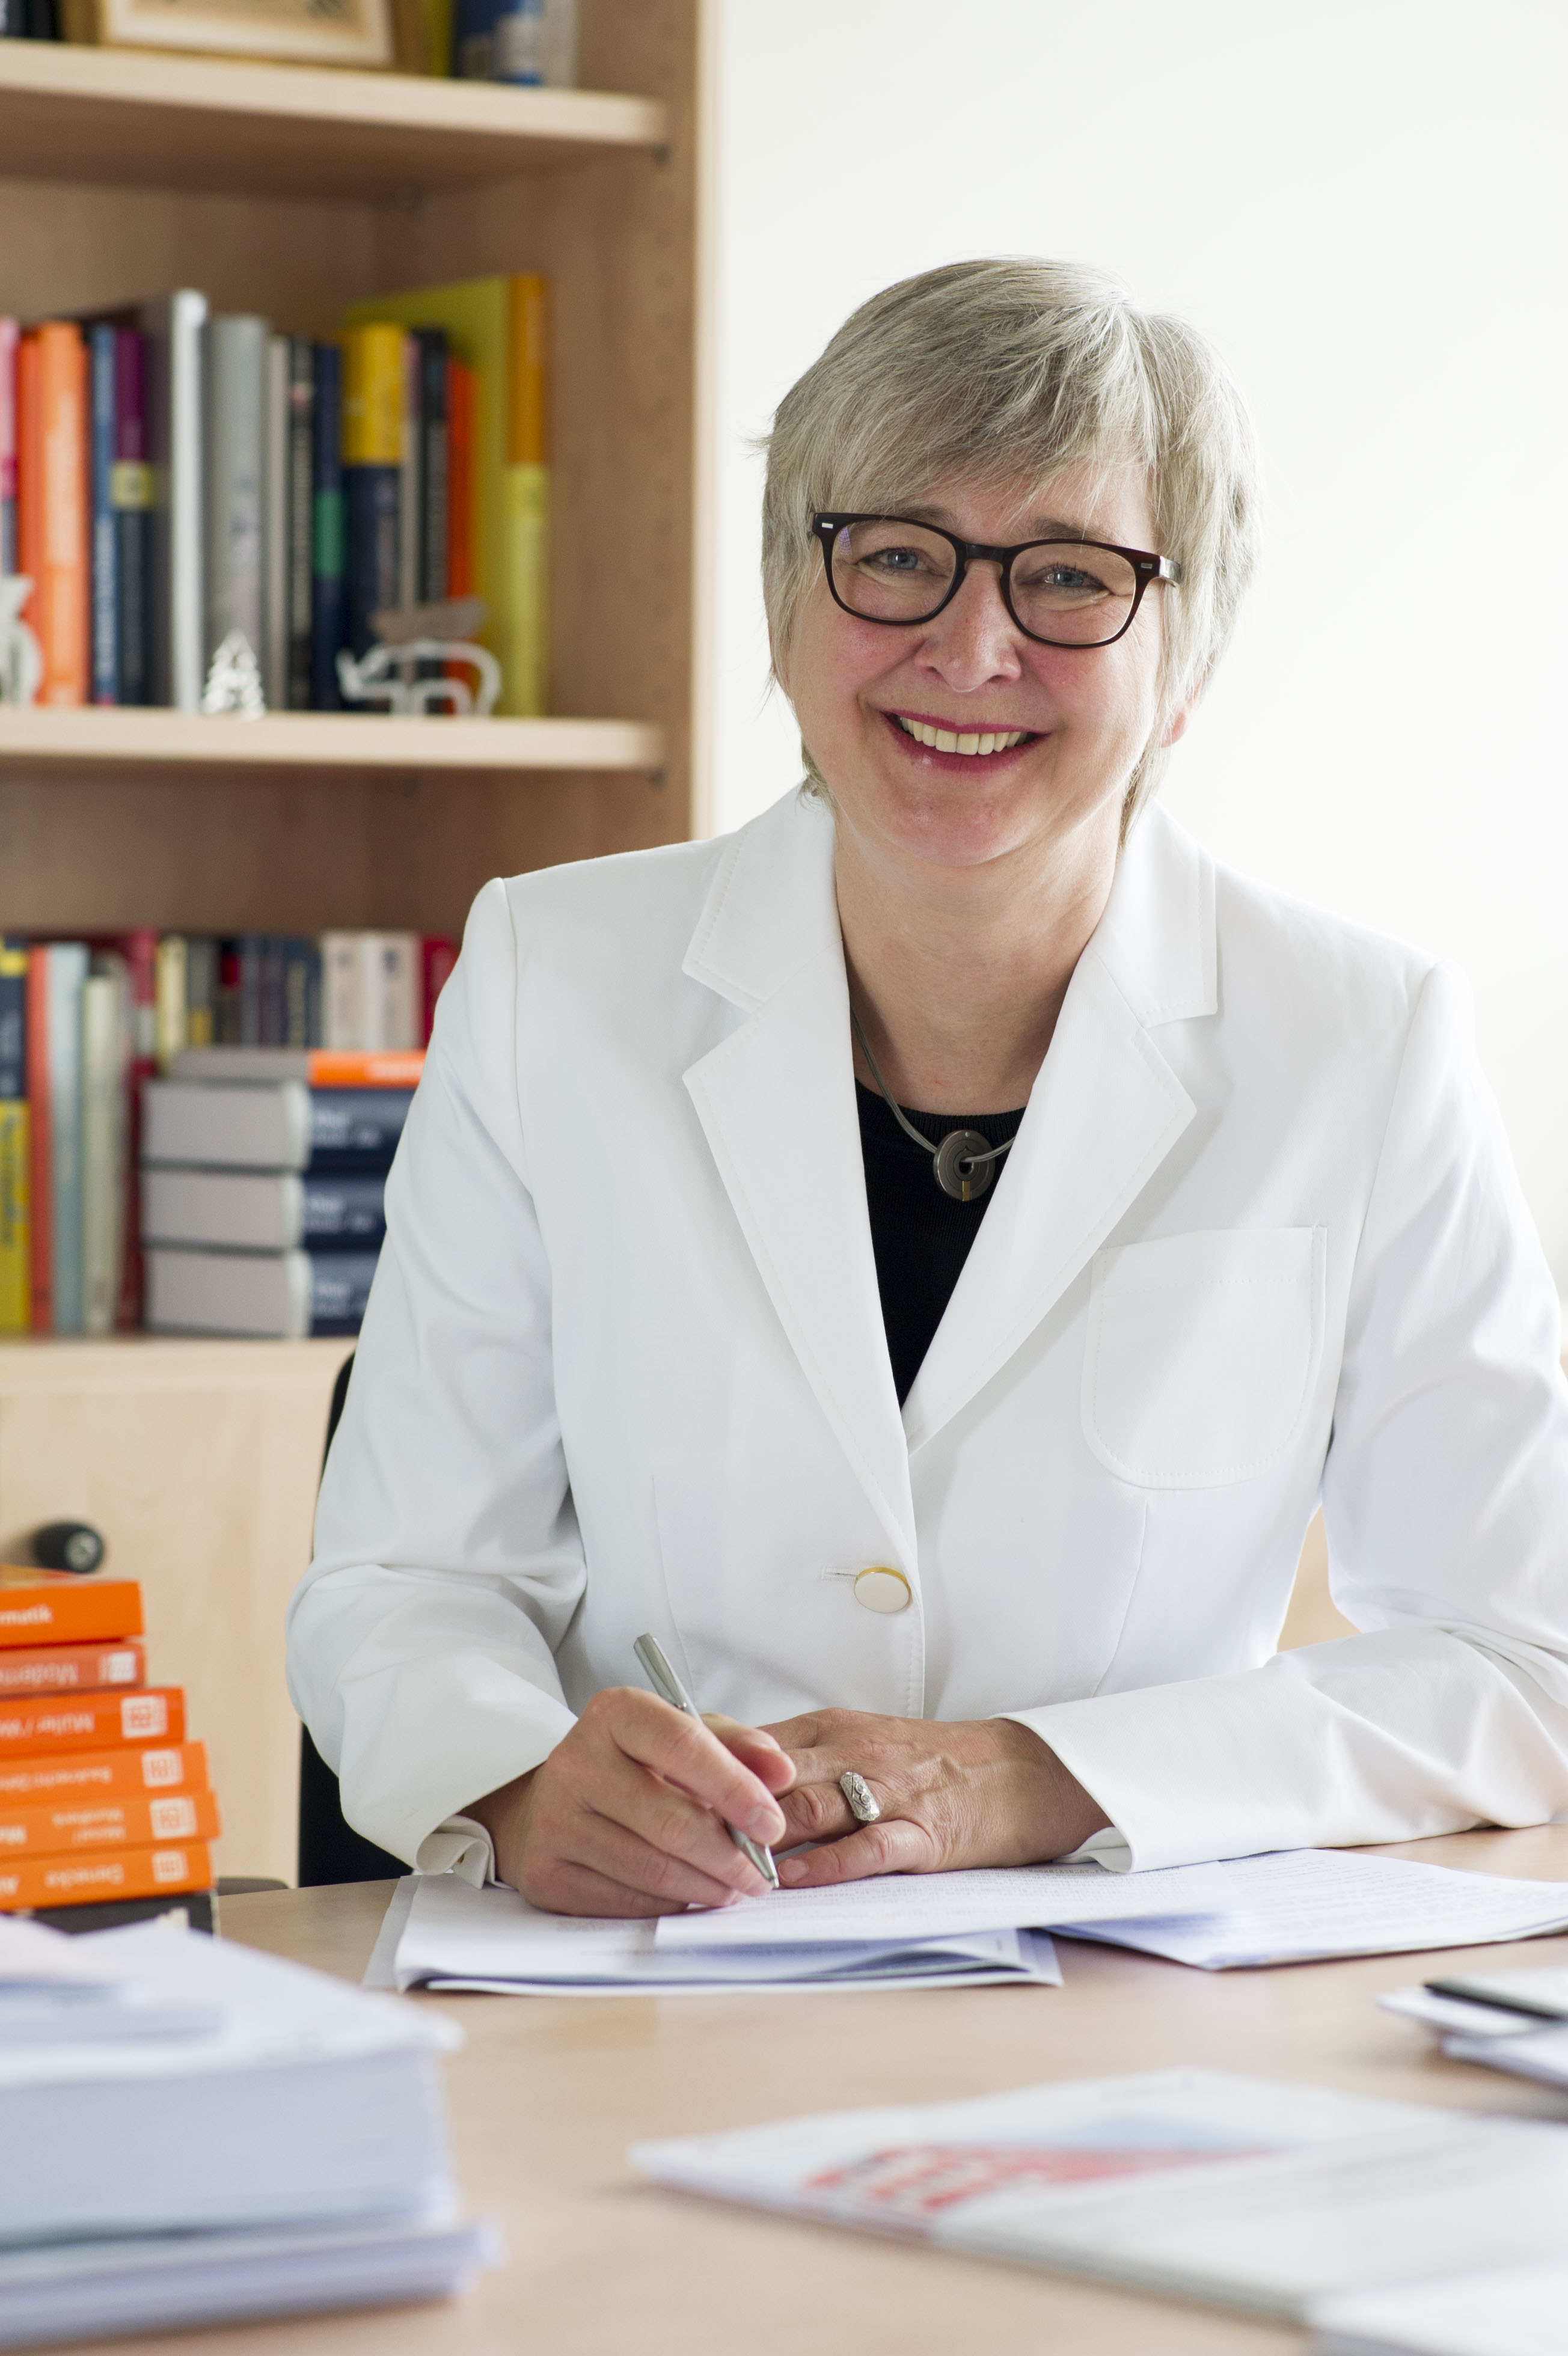 Dorothea Wagner elected as Chairwoman of the German Science Council